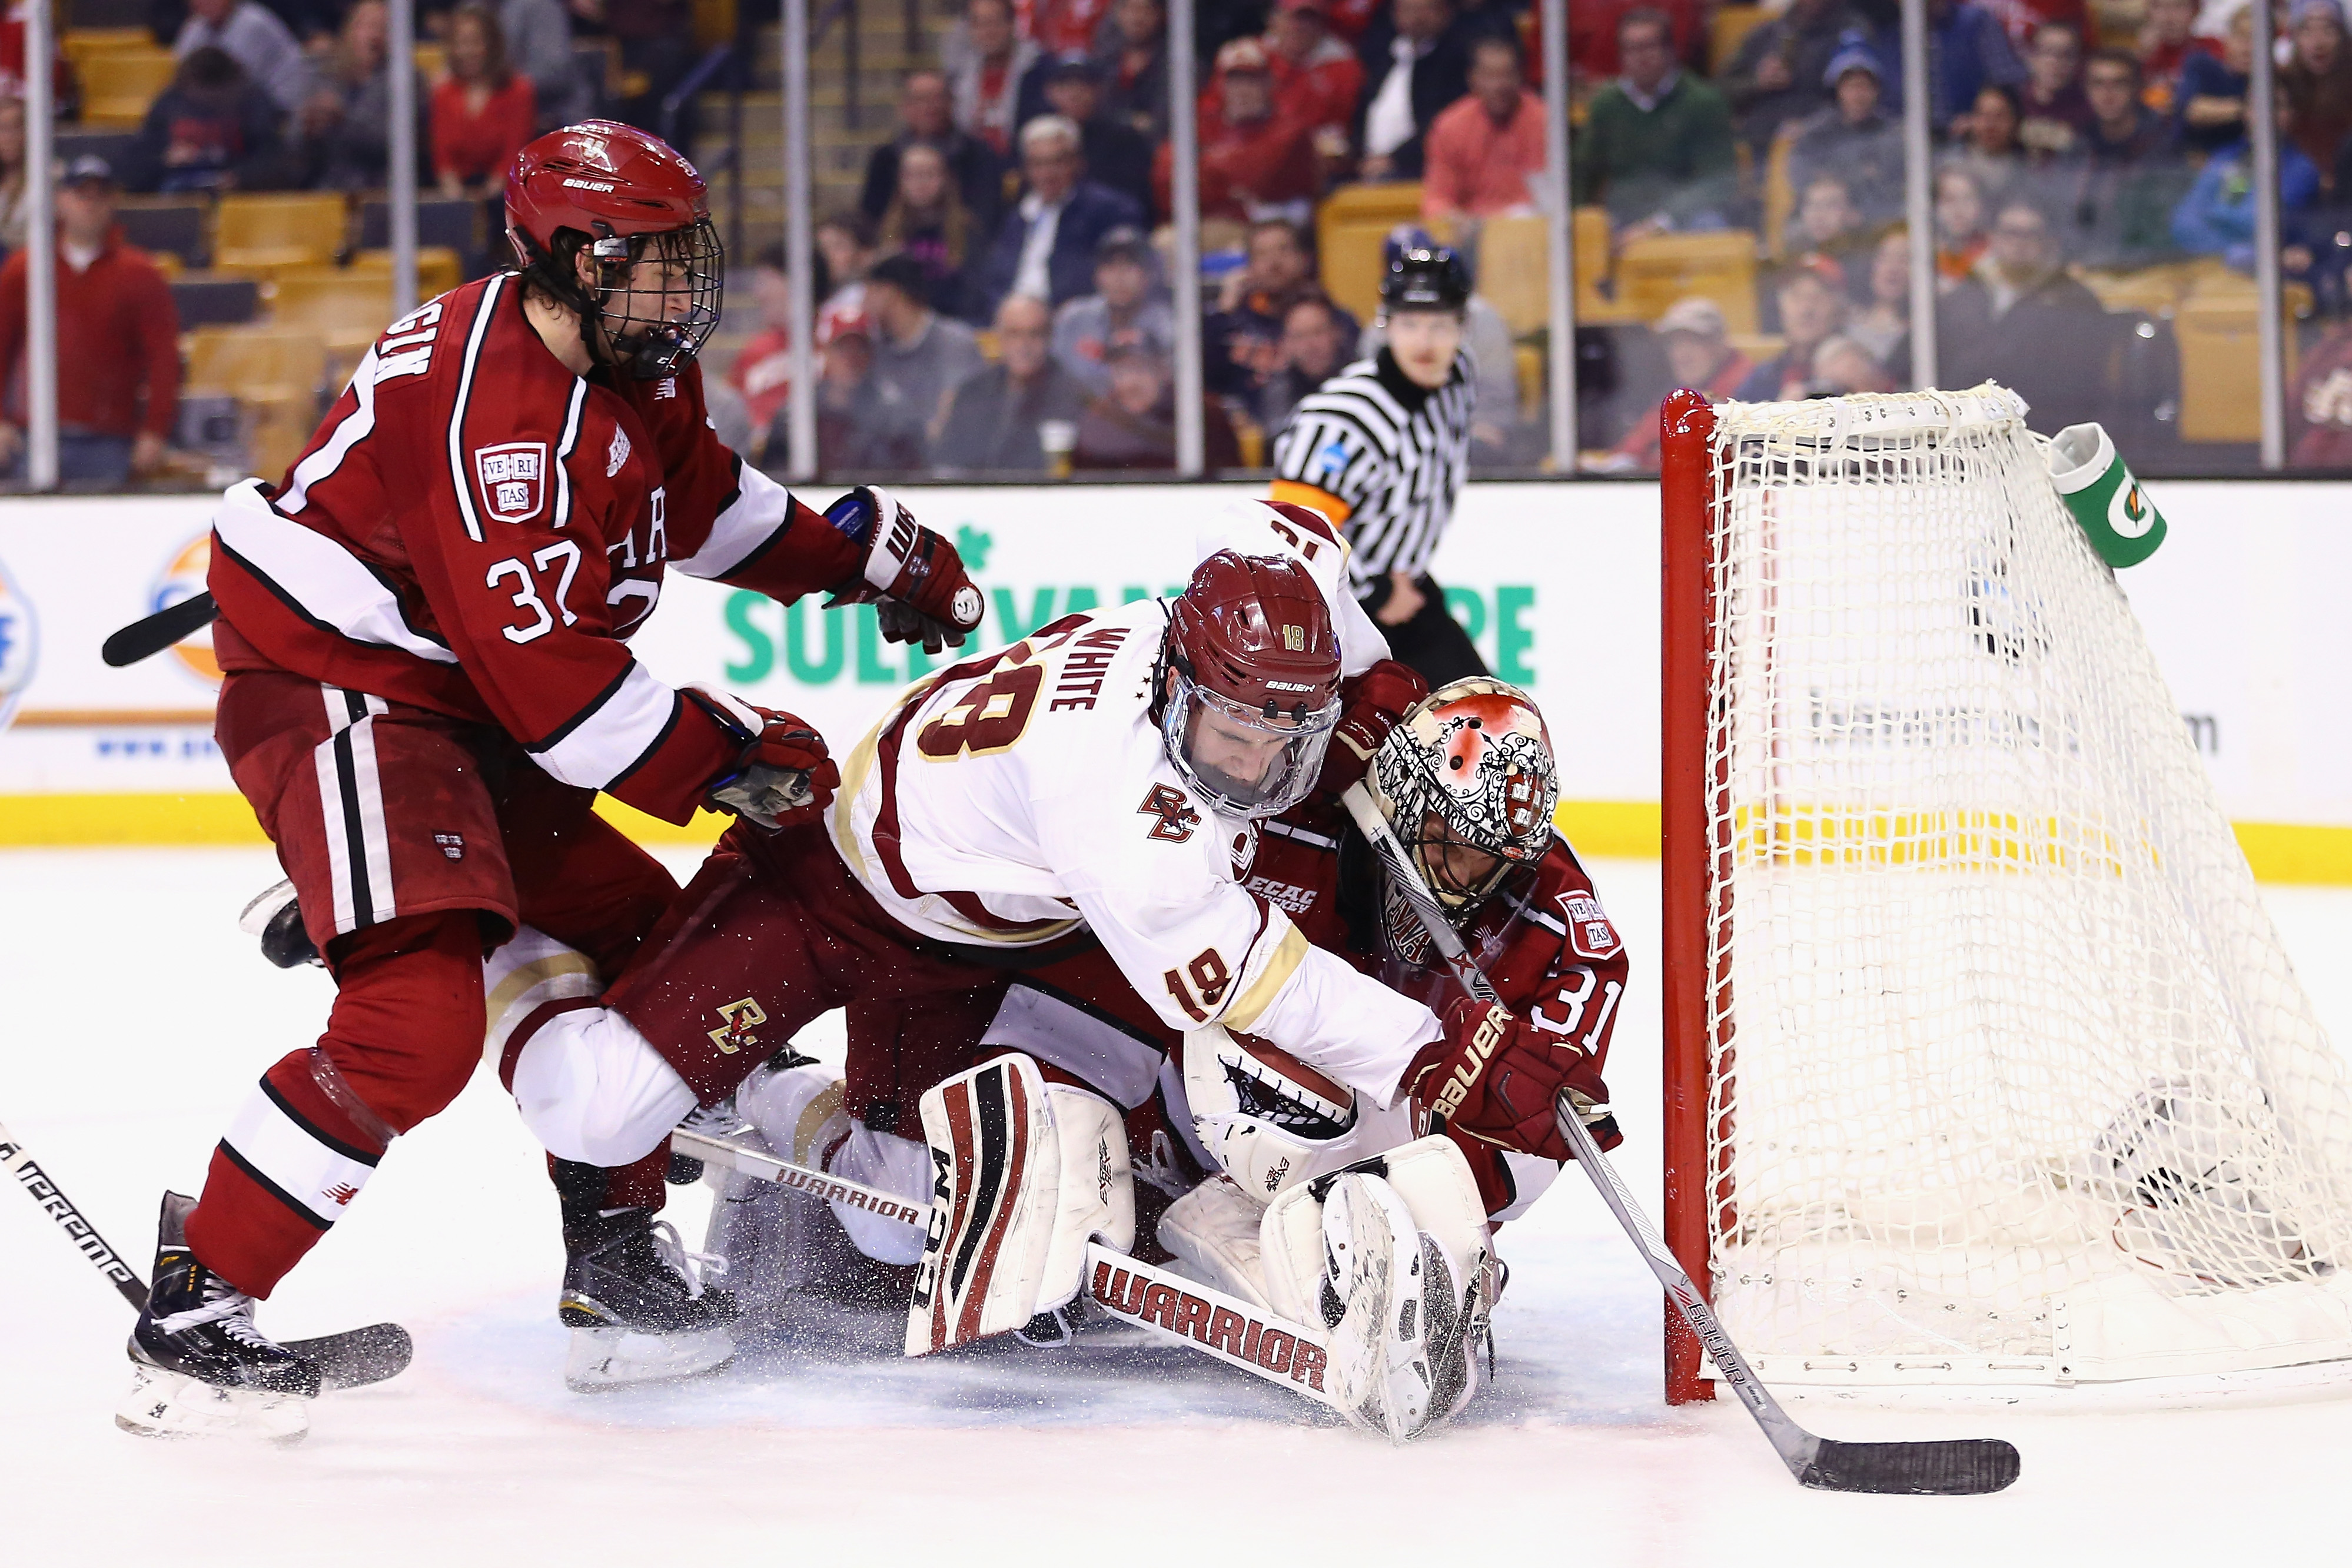 NCAA: How Much Does One Game Mean In The Wild World Of College Hockey?